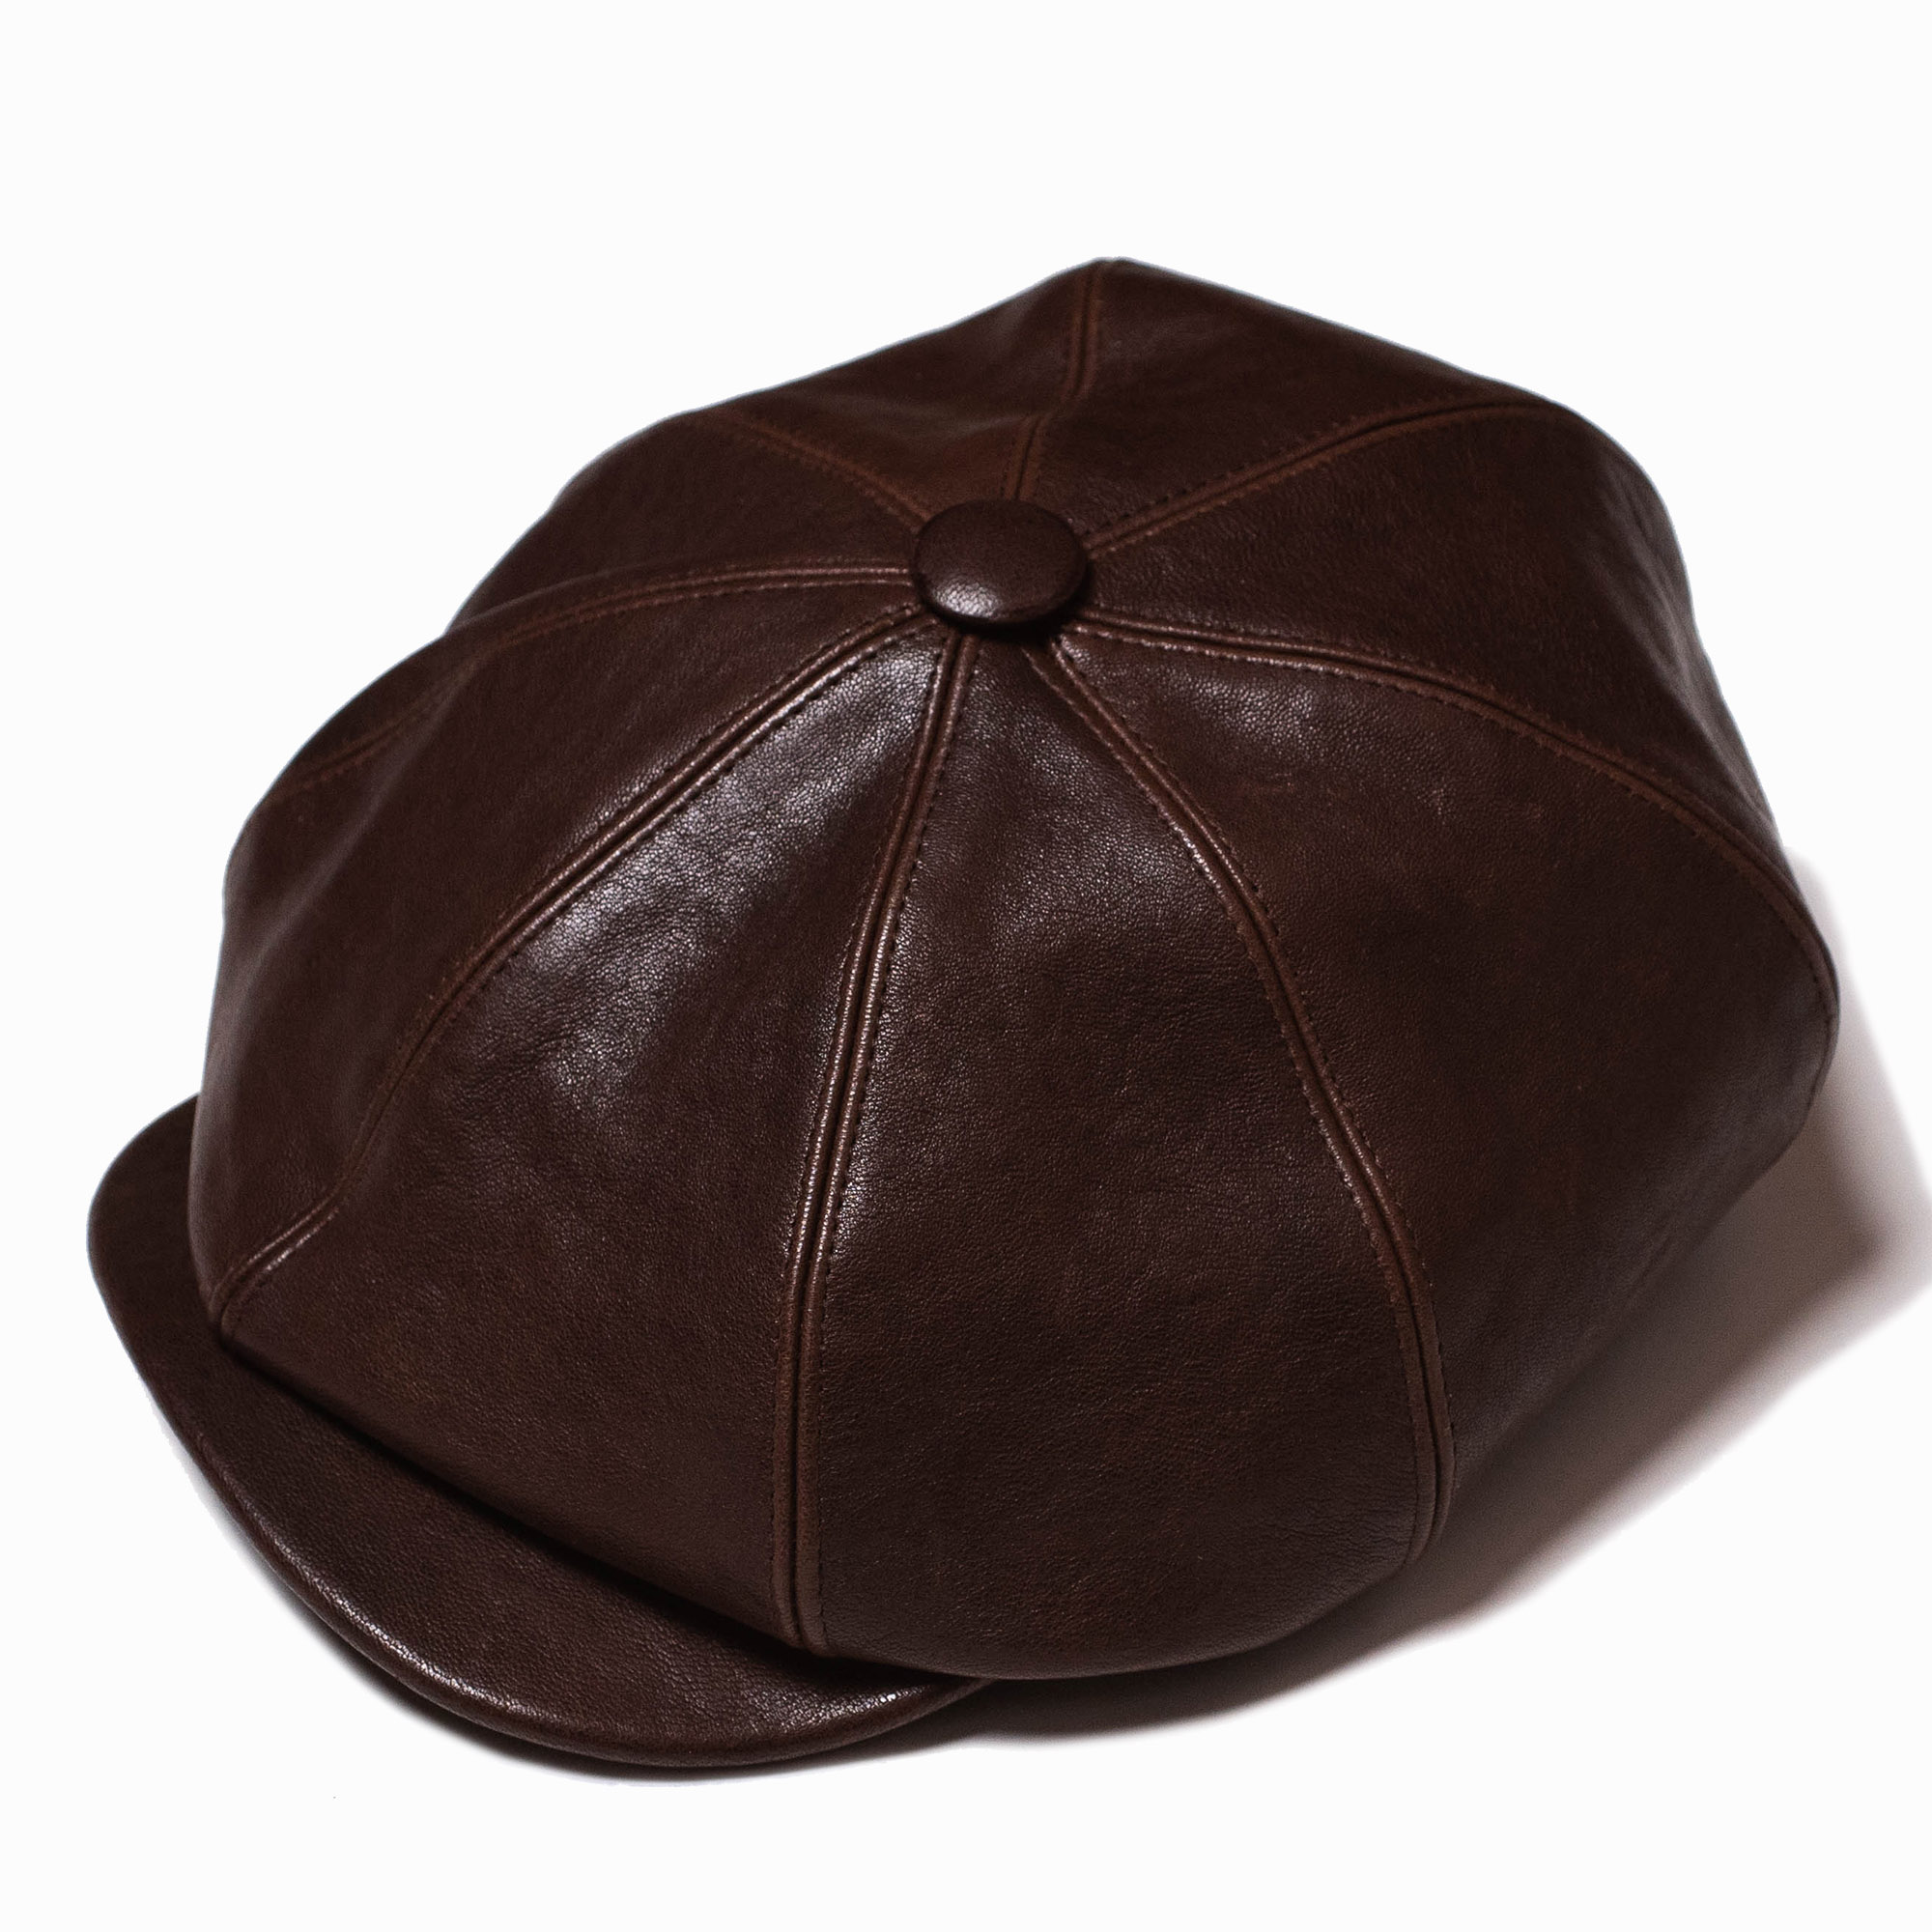 shangri-la-heritage-outlaw-brown-lambskin-8-panel-riders-cap-still-life-1